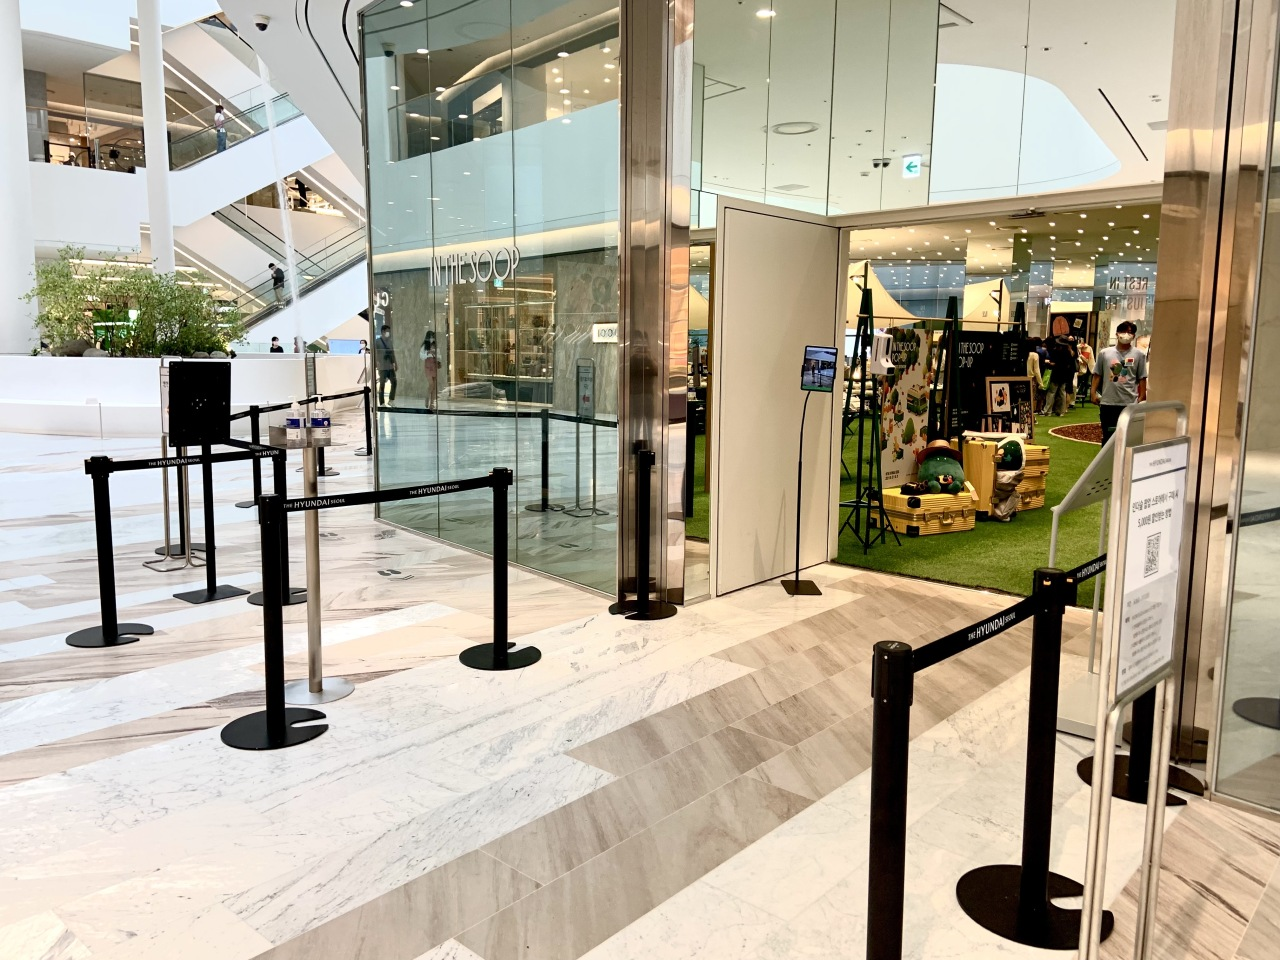 This file photo shows the entrance to the BTS pop-up store at The Hyundai Seoul in Yeouido, western Seoul. (Park Jun-hee/The Korea Herald)